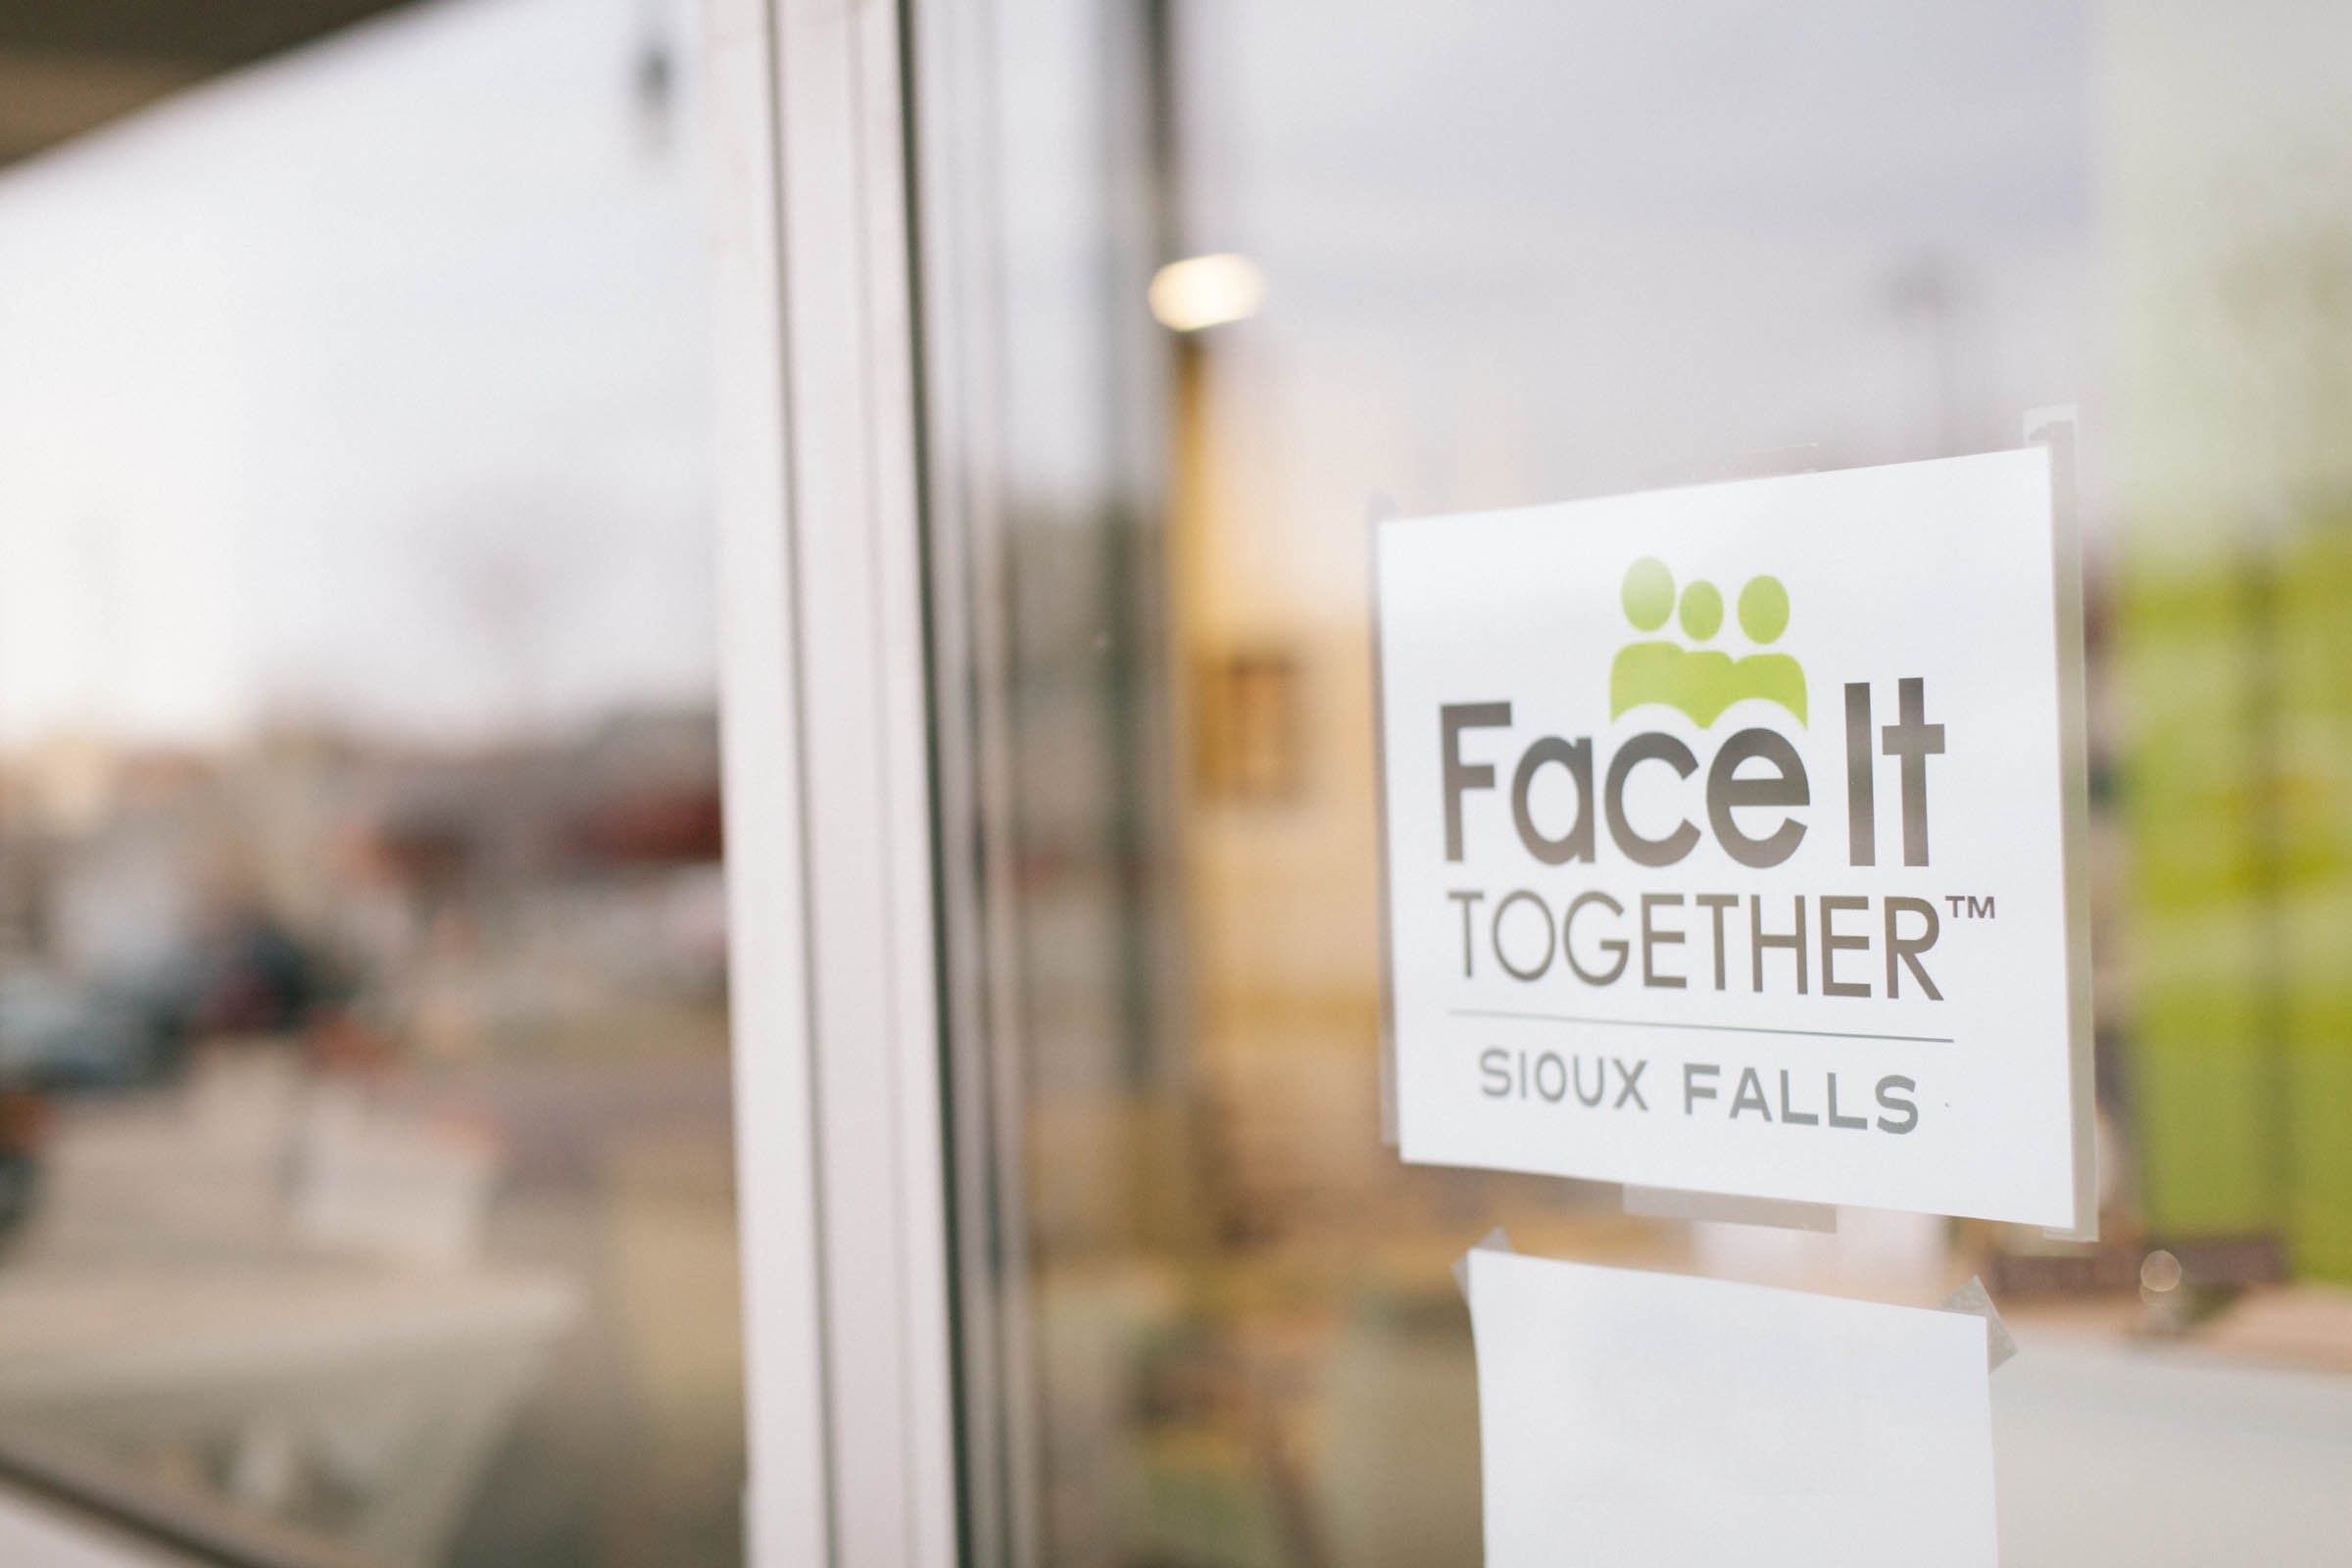 Photo of Face It TOGETHER Sioux Falls sign